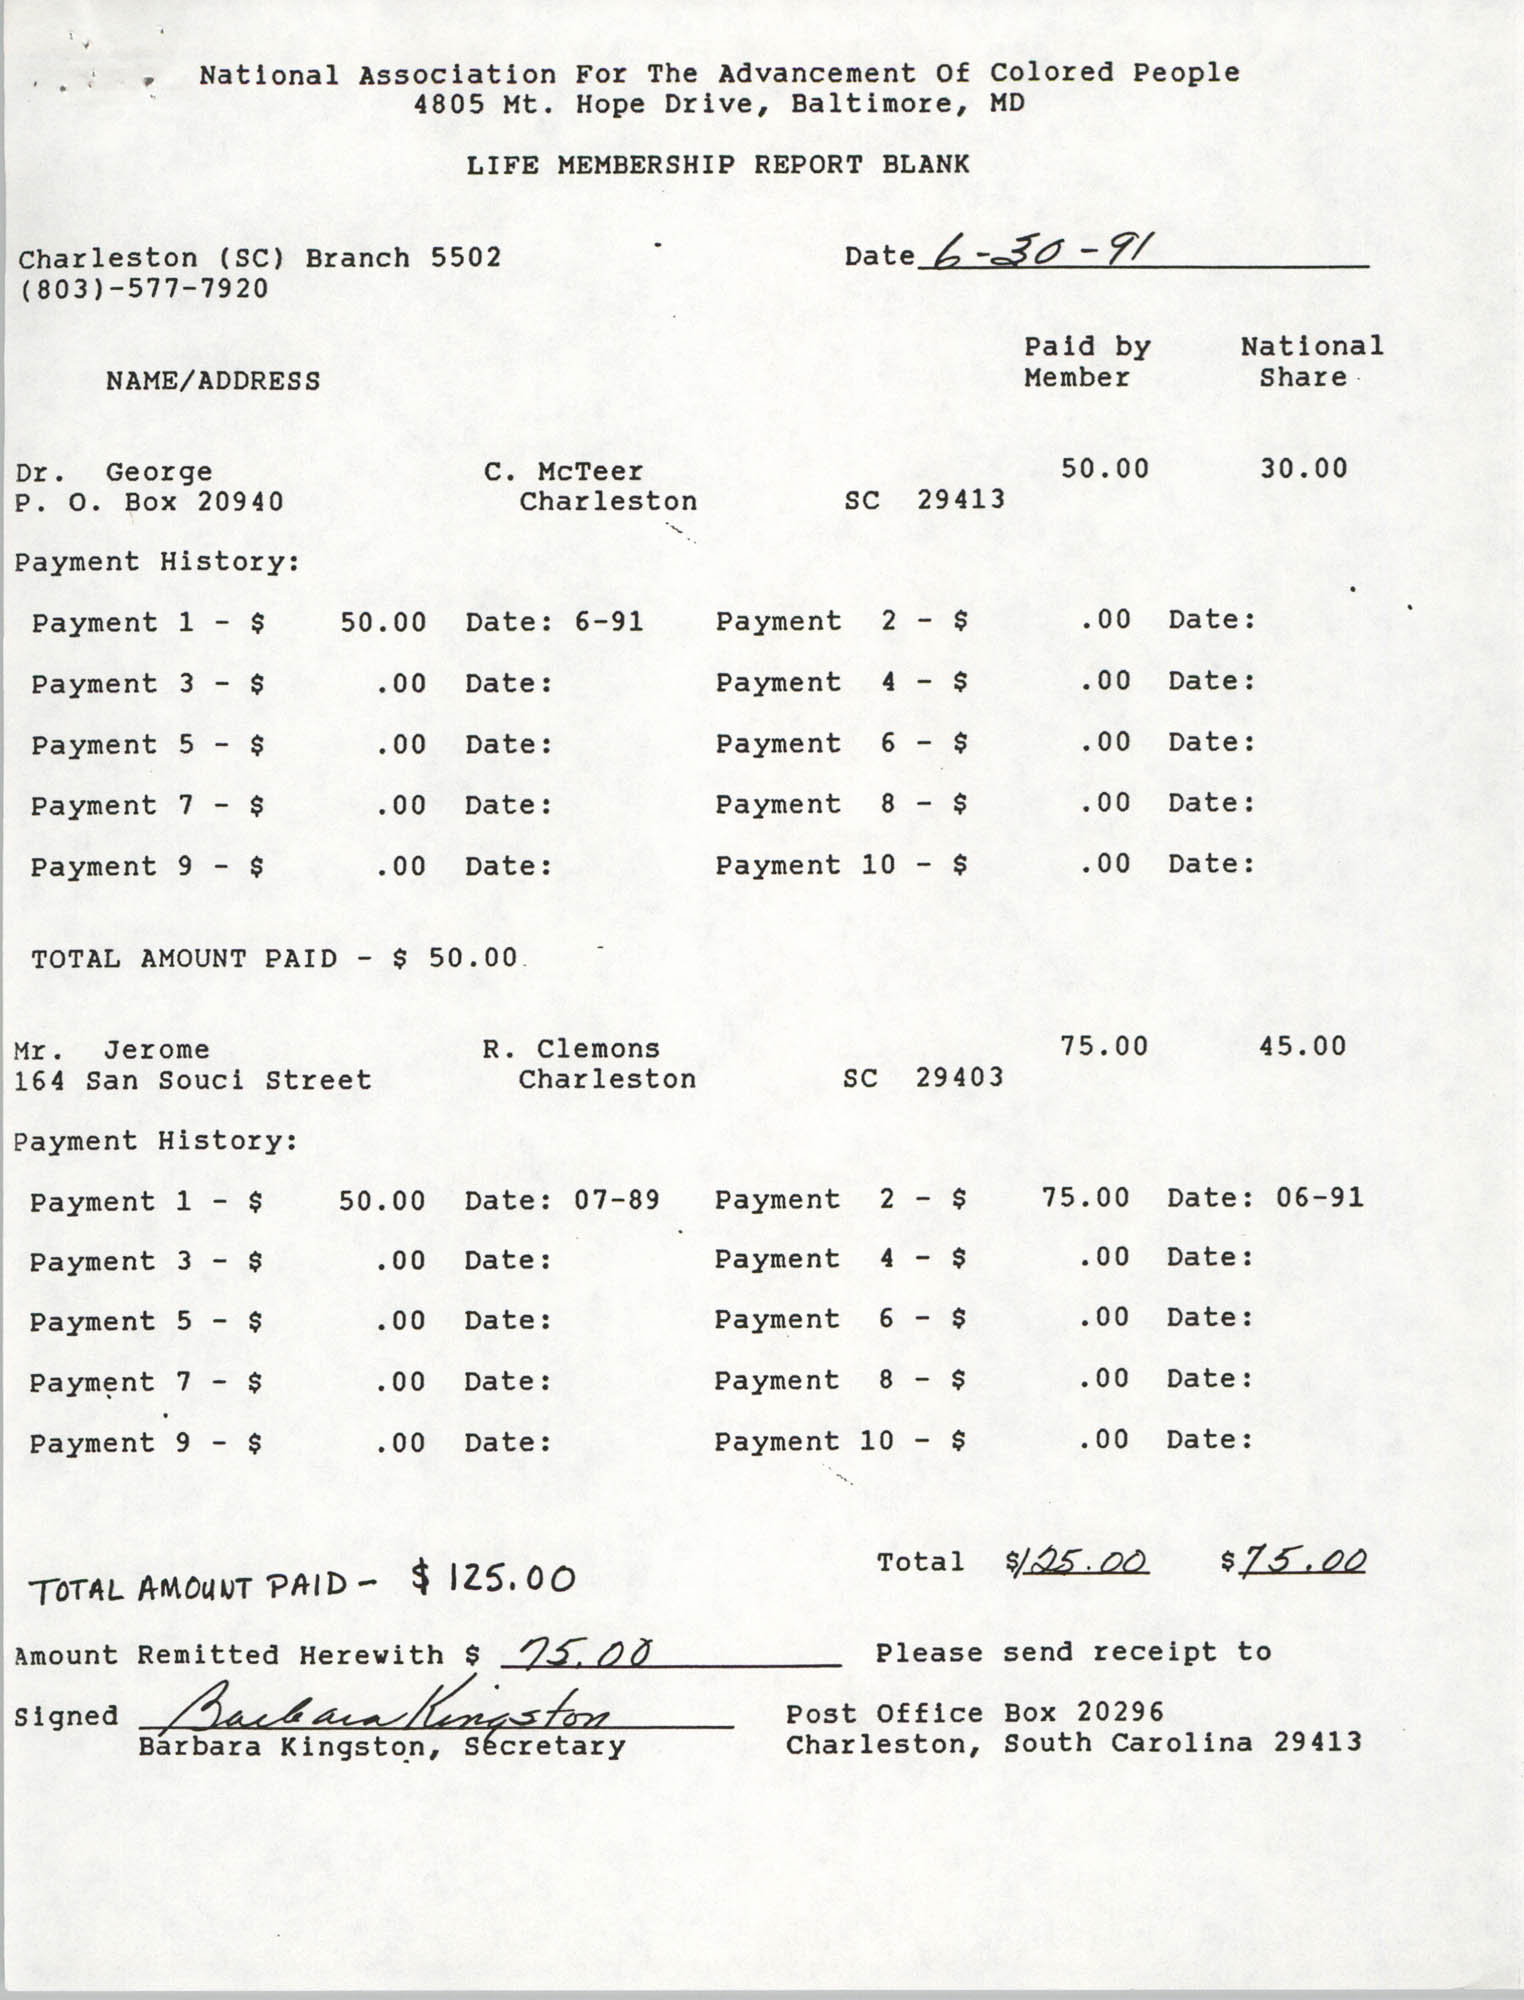 Life Membership Report Blank, Charleston Branch of the NAACP, Barbara Kingston, June 30, 1991